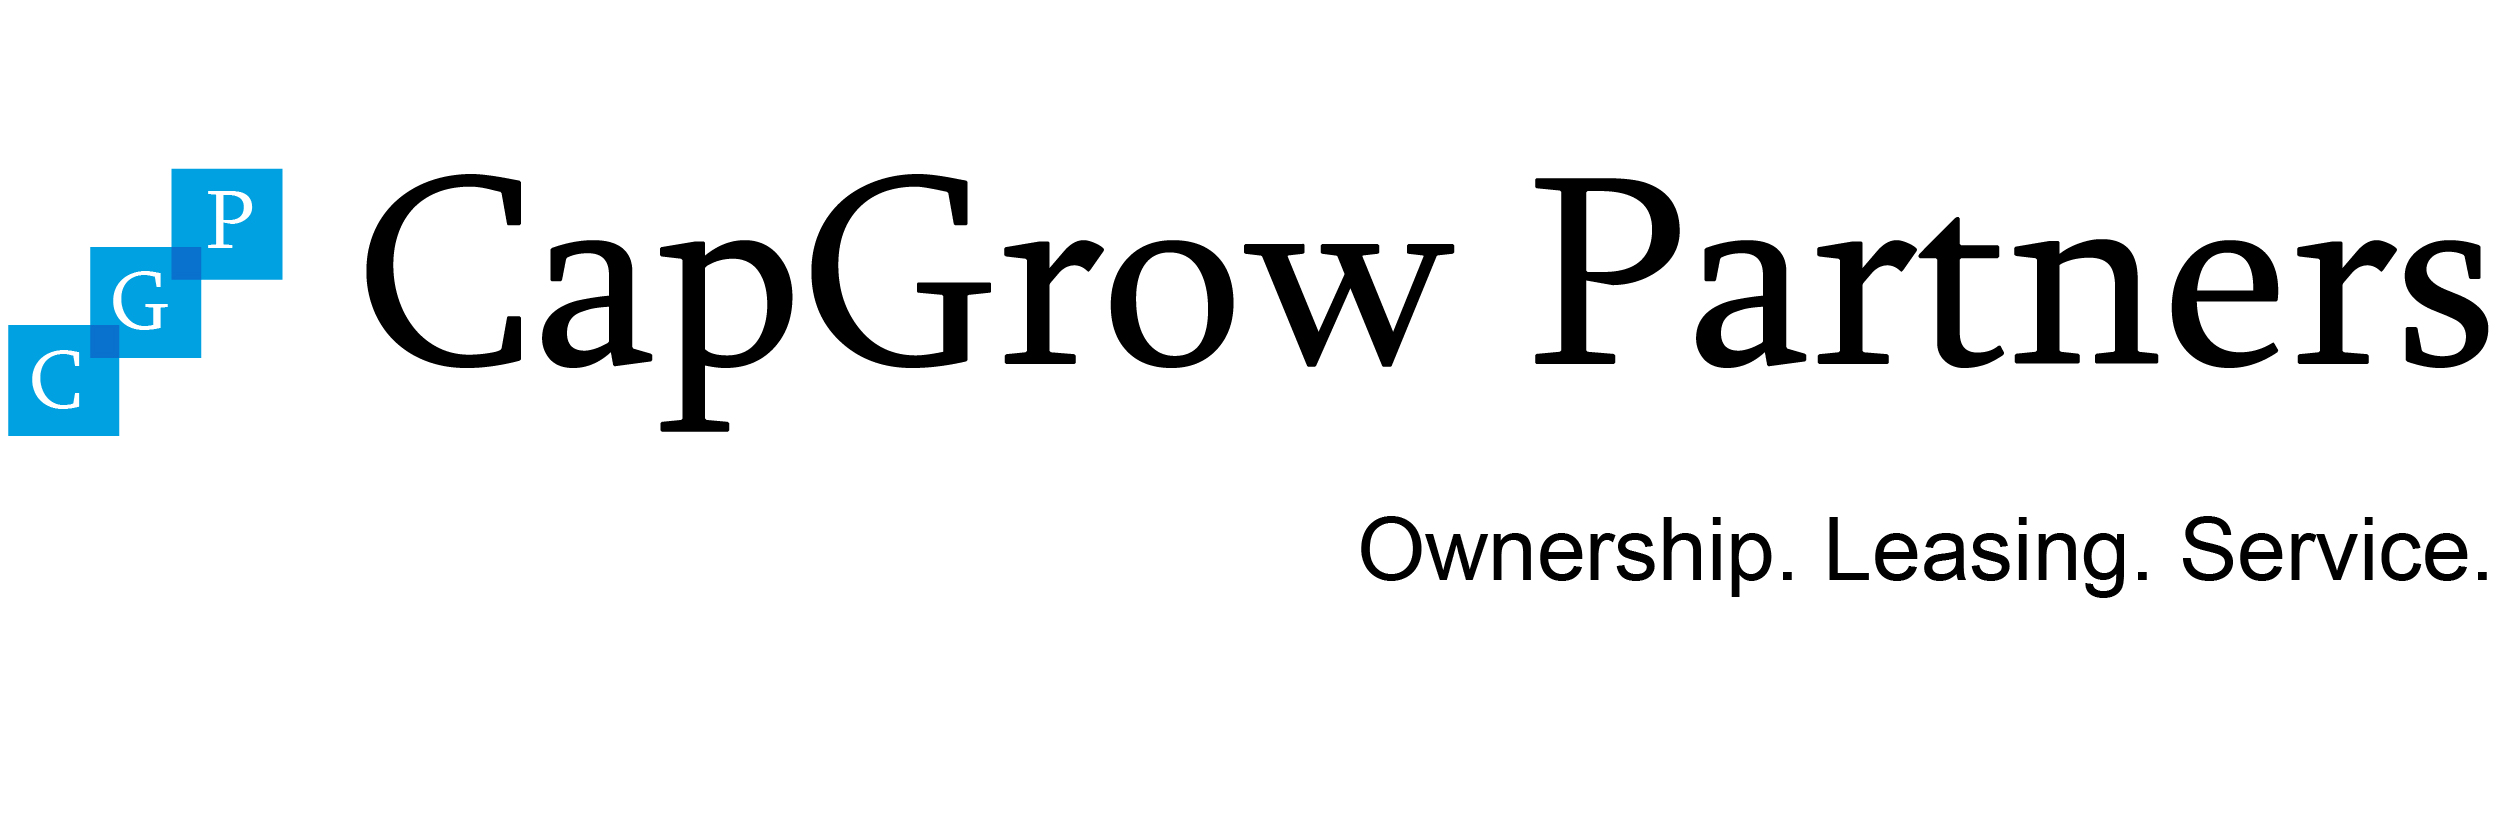 capgrow_high_res